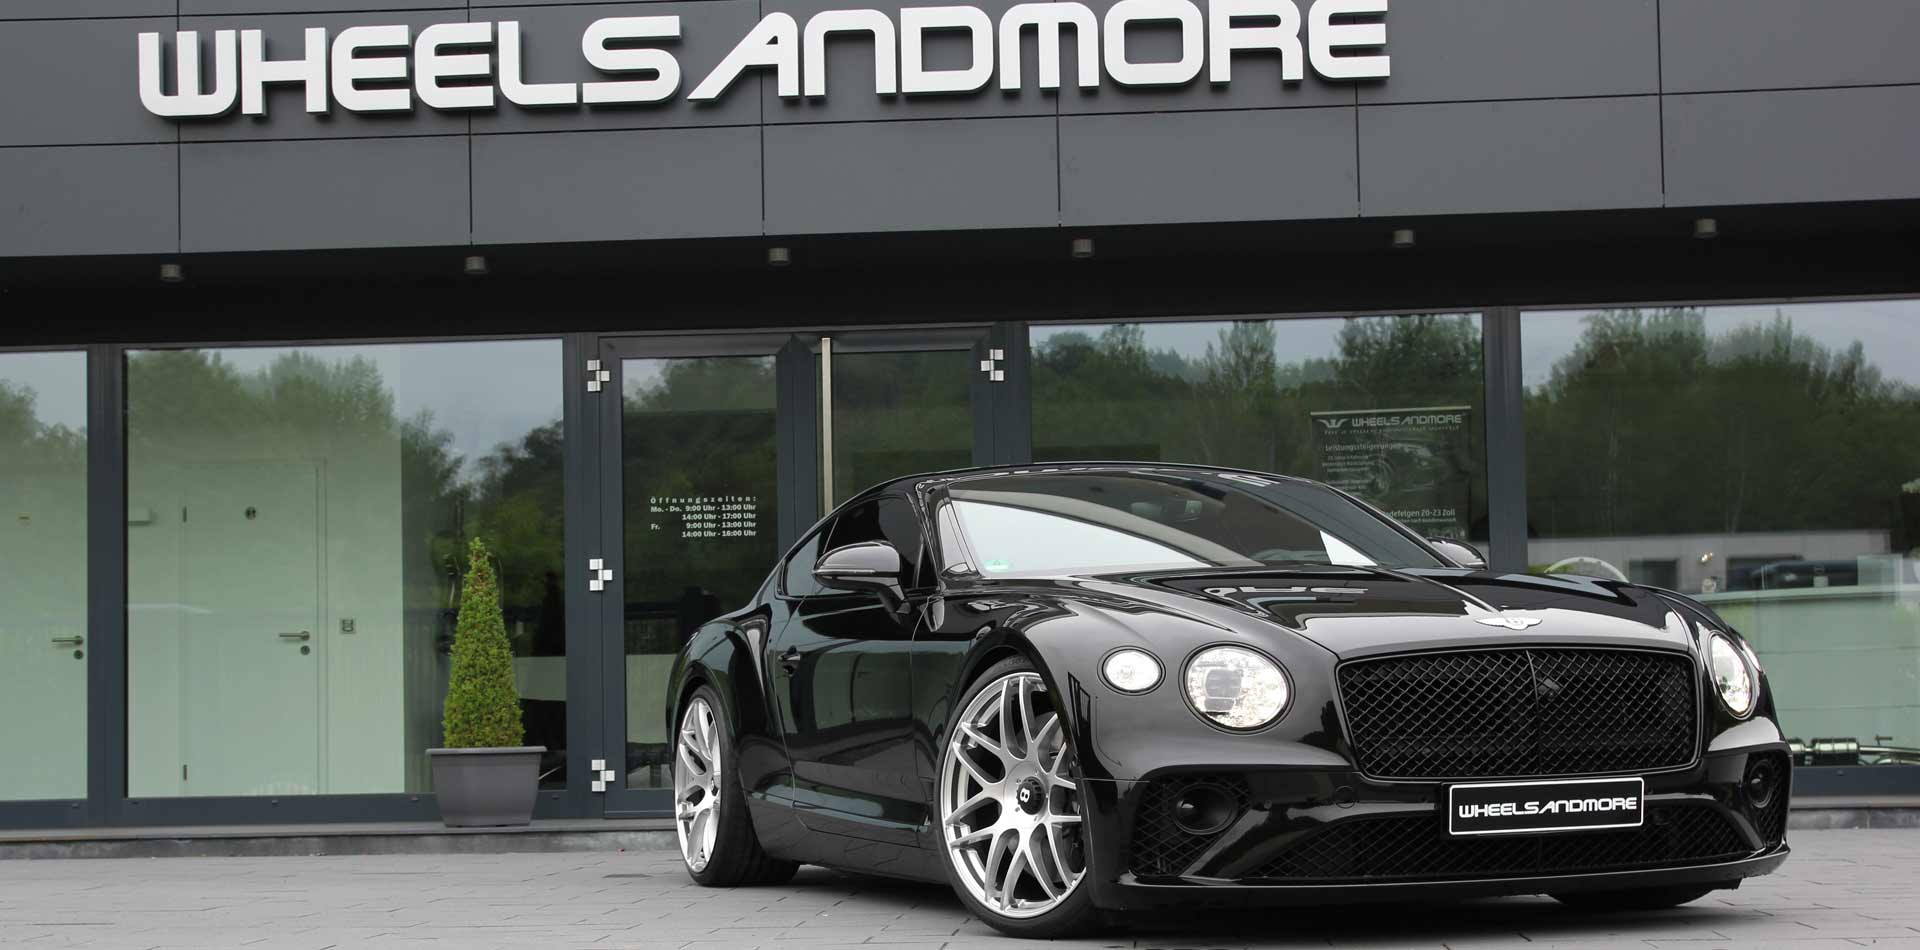 new bentley tunign by wheelsandmore, direkt vor der firmentüre